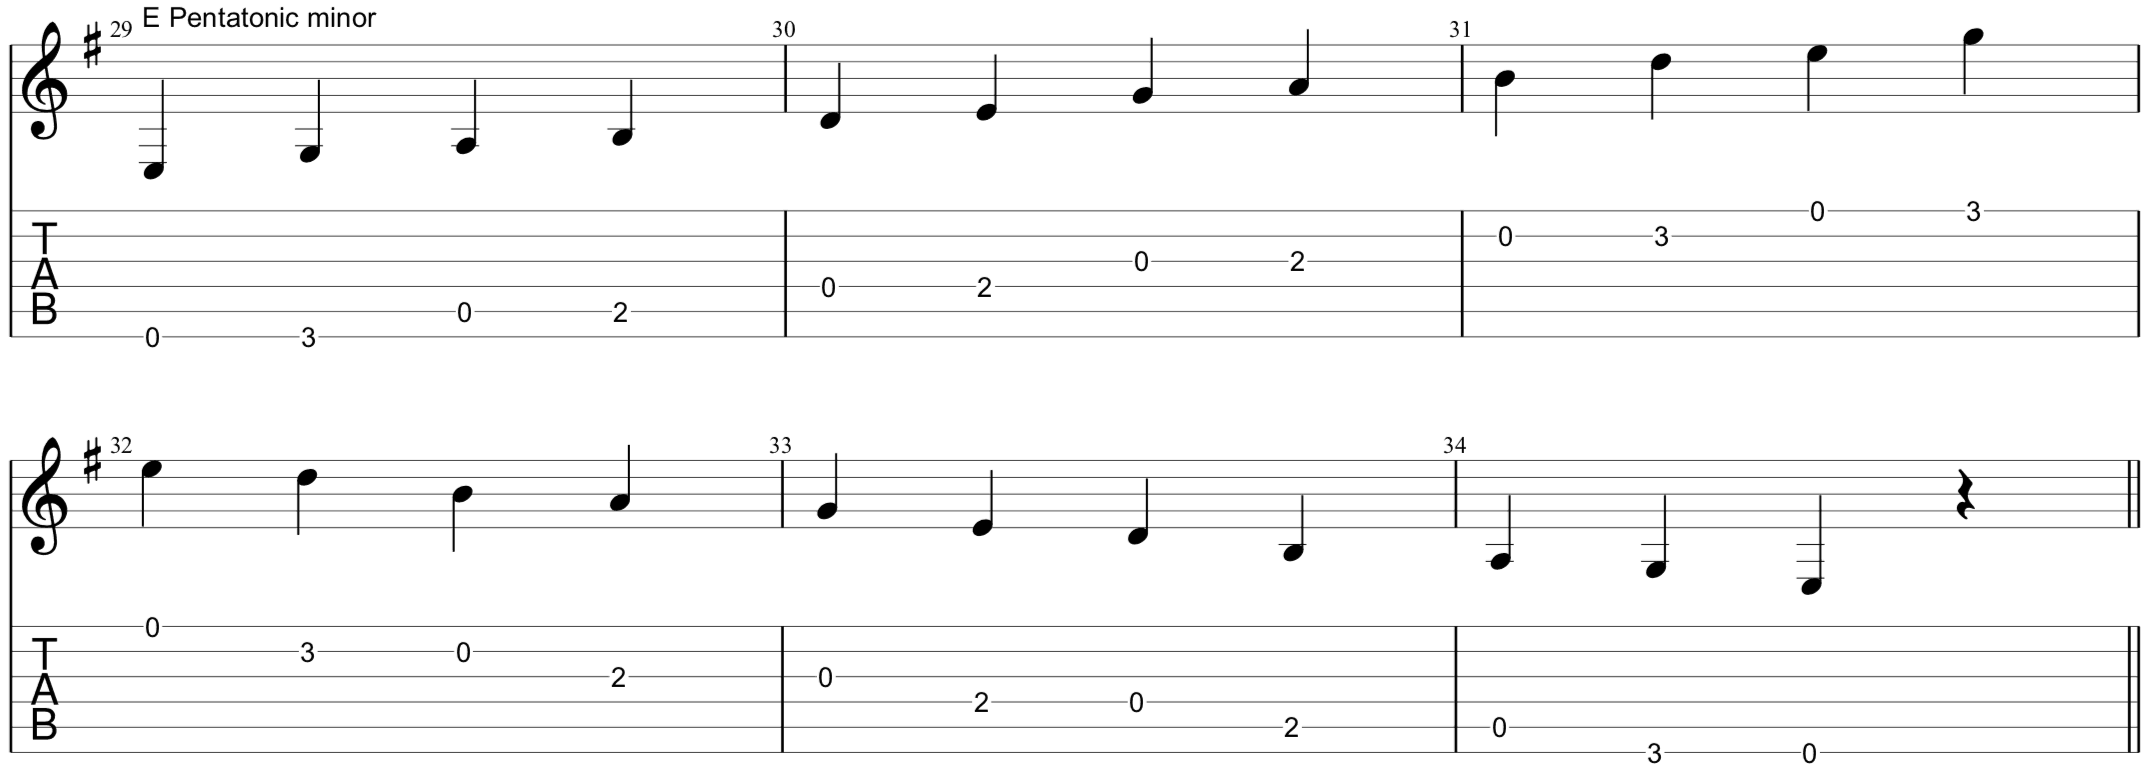 E pentatonic minor with TAB